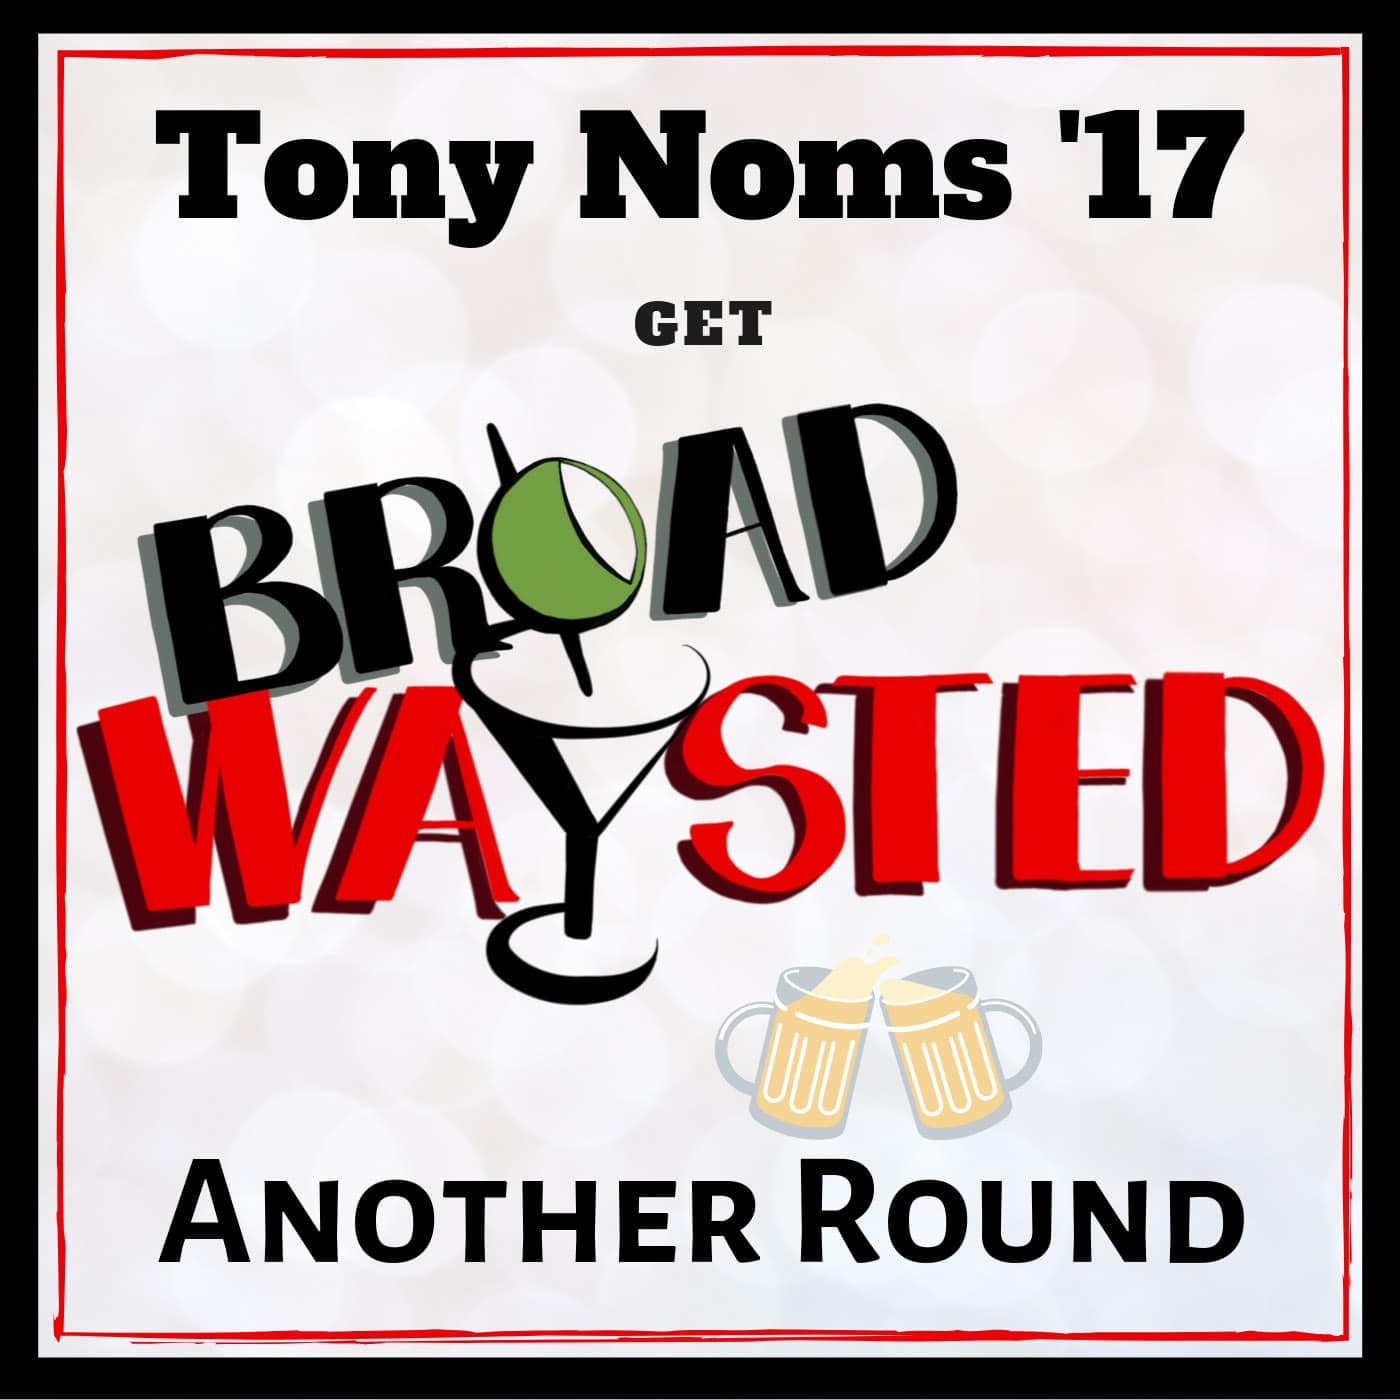 Broadwaysted Another Round Tony Noms 17